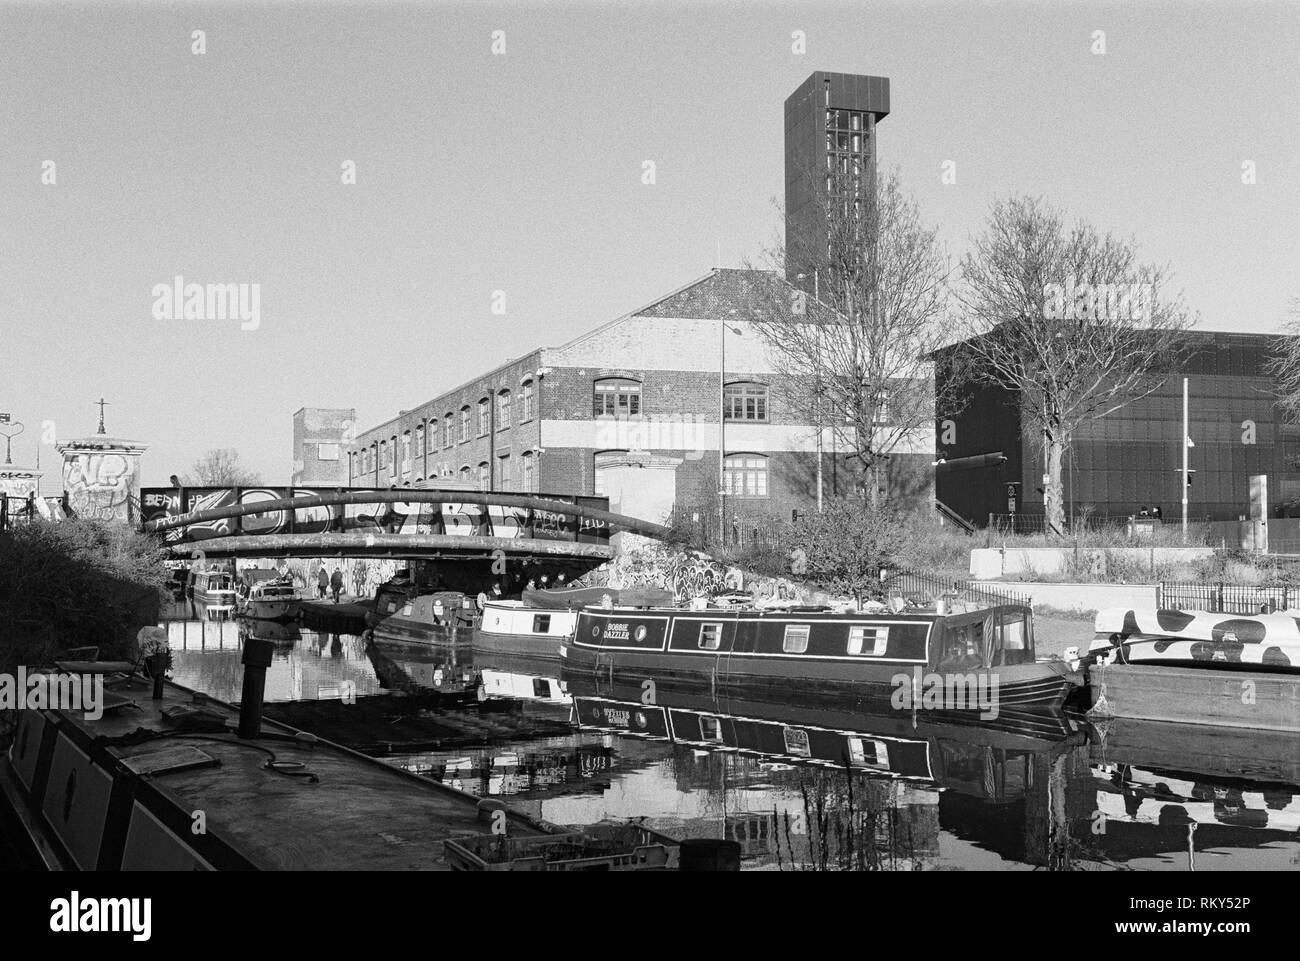 The River Lea Navigation at Hackney Wick, East London UK, with narrowboats - Stock Image